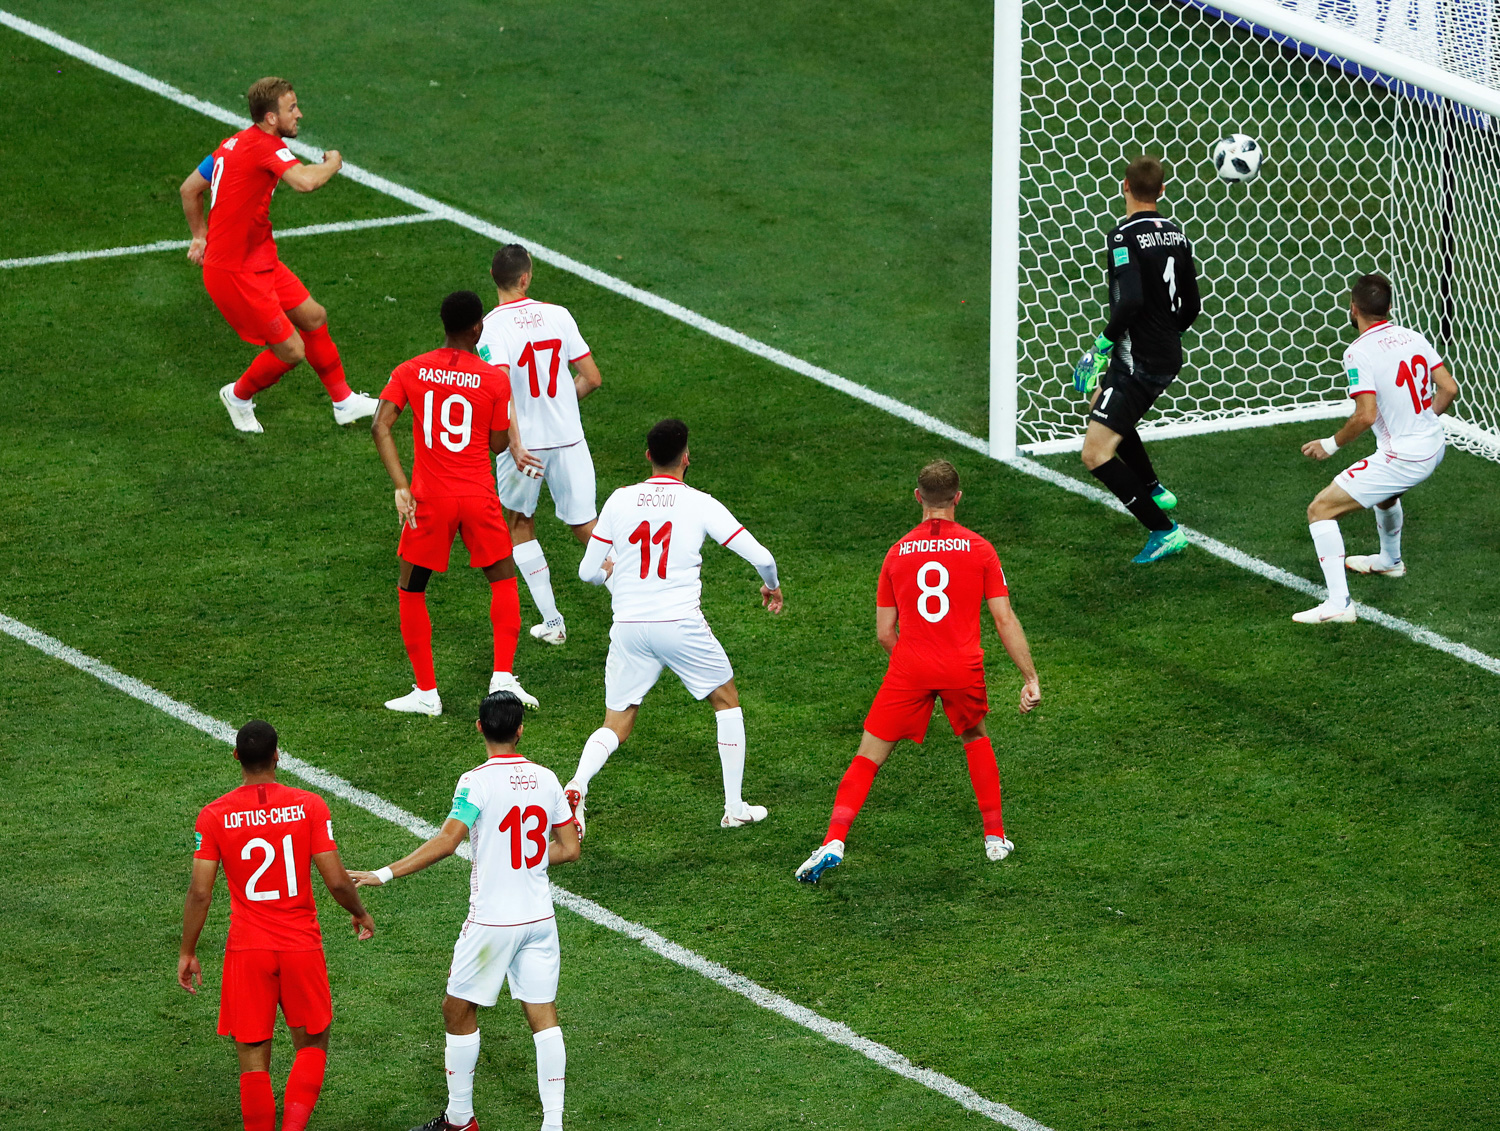 "<div class=""meta image-caption""><div class=""origin-logo origin-image none""><span>none</span></div><span class=""caption-text"">England's Harry Kane, left, scores his side's winning goal during the group G match between Tunisia and England (Rebecca Blackwell/AP Photo)</span></div>"